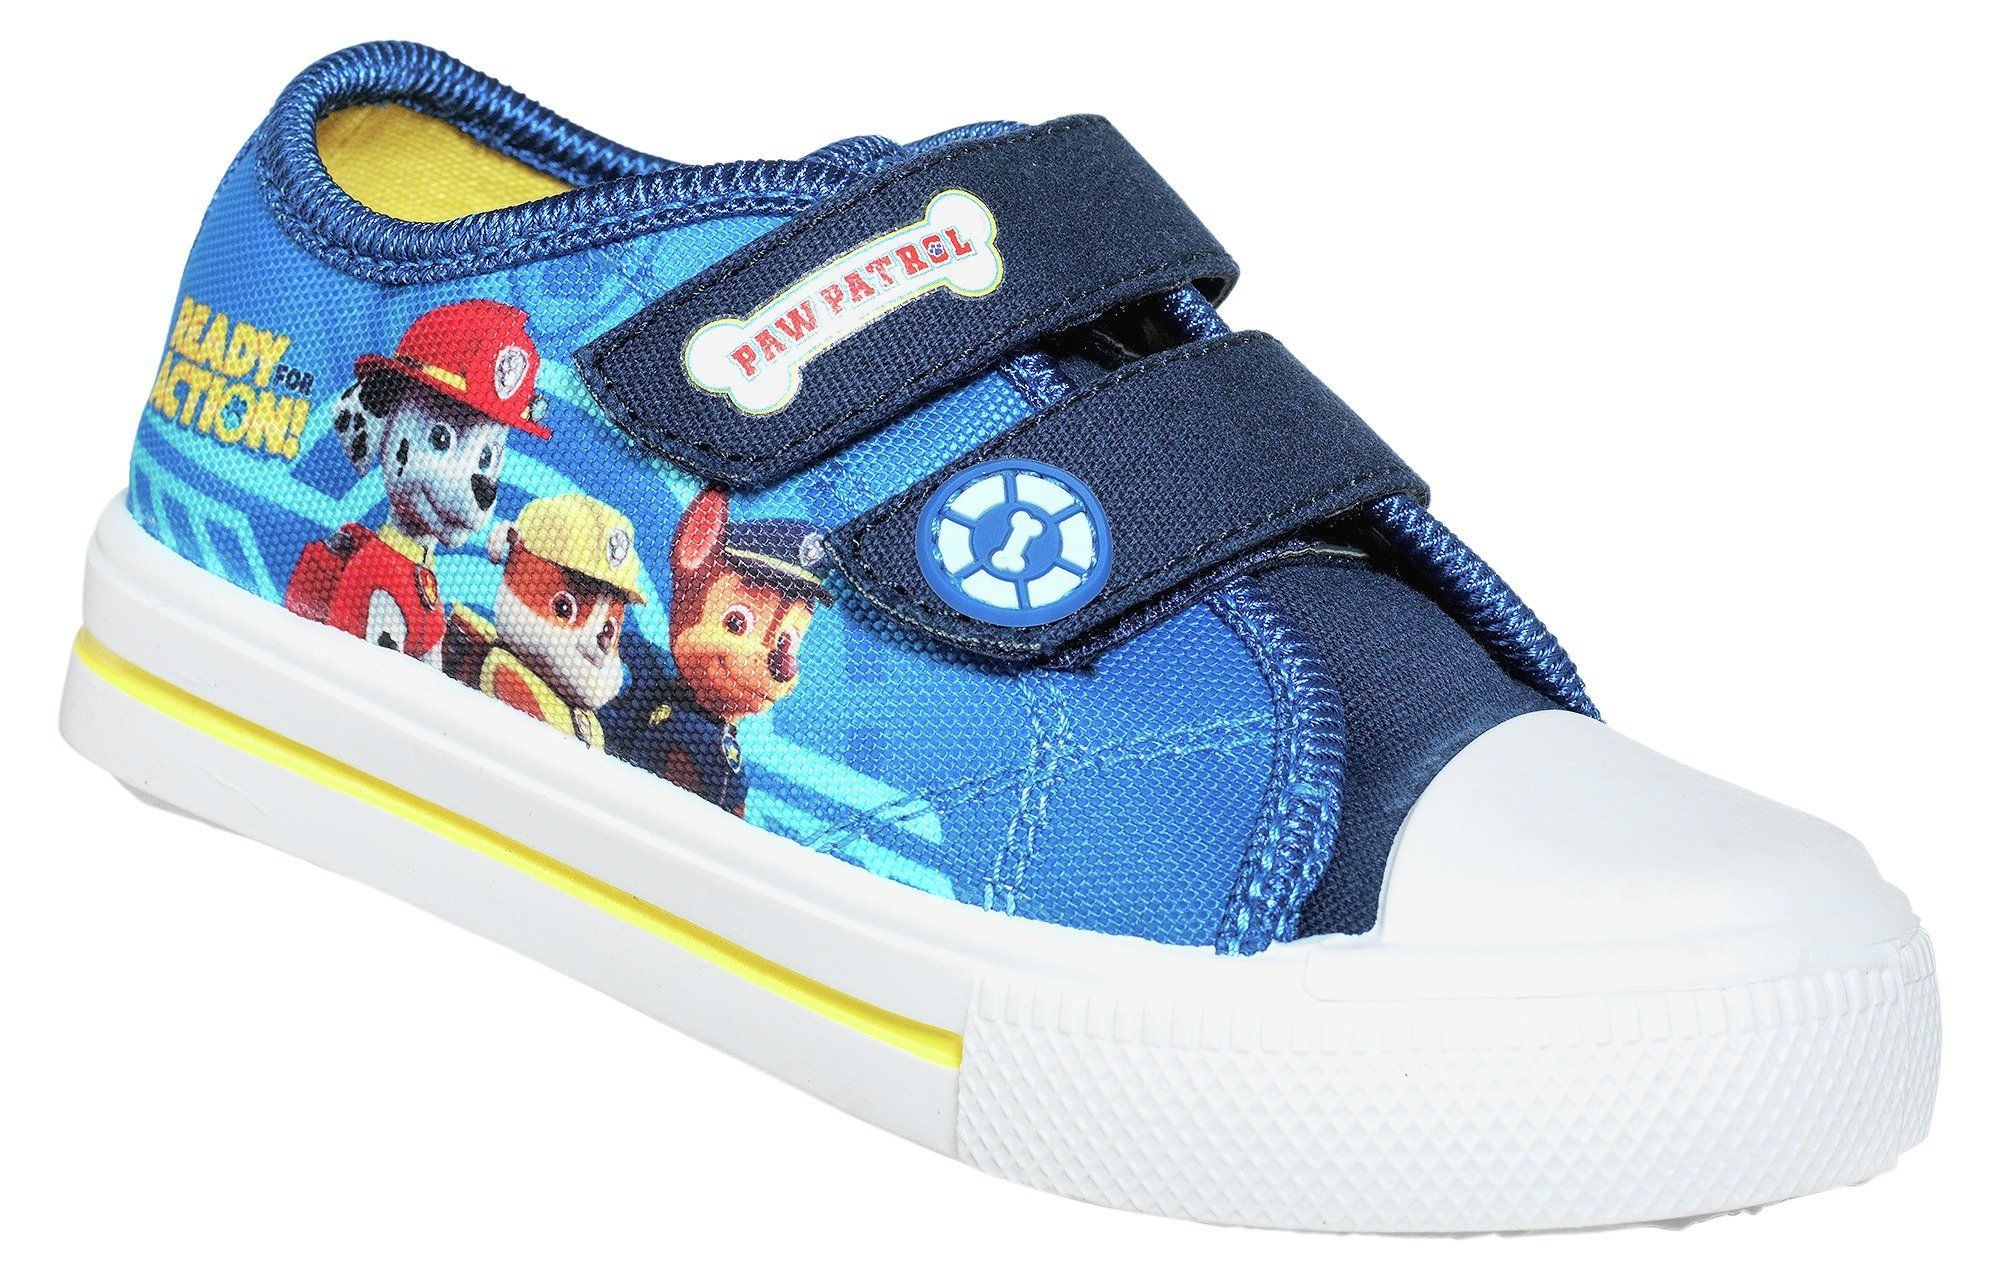 Image of Paw Patrol - Boys Blue Canvas Trainers - Size 6